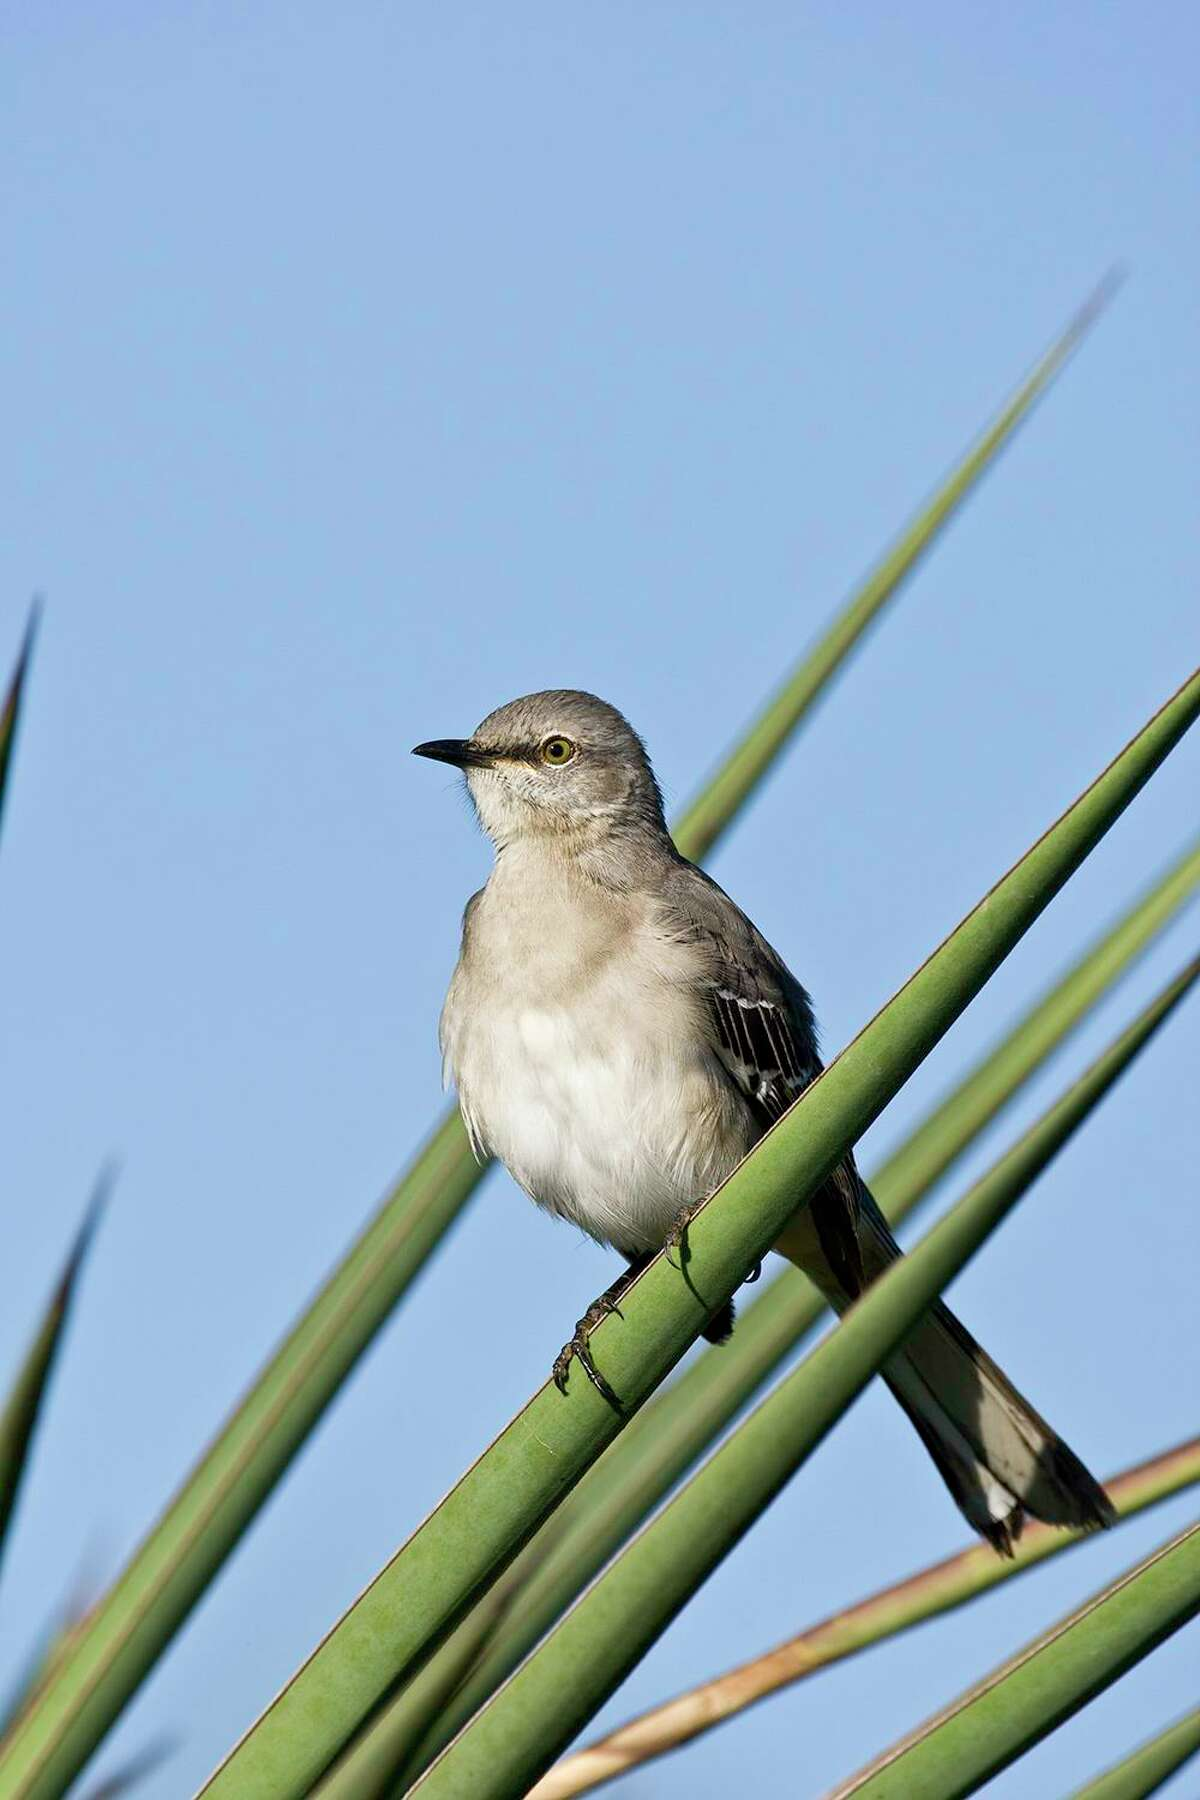 Thomas Jefferson owned several northern mockingbirds. He loved their varied songs.